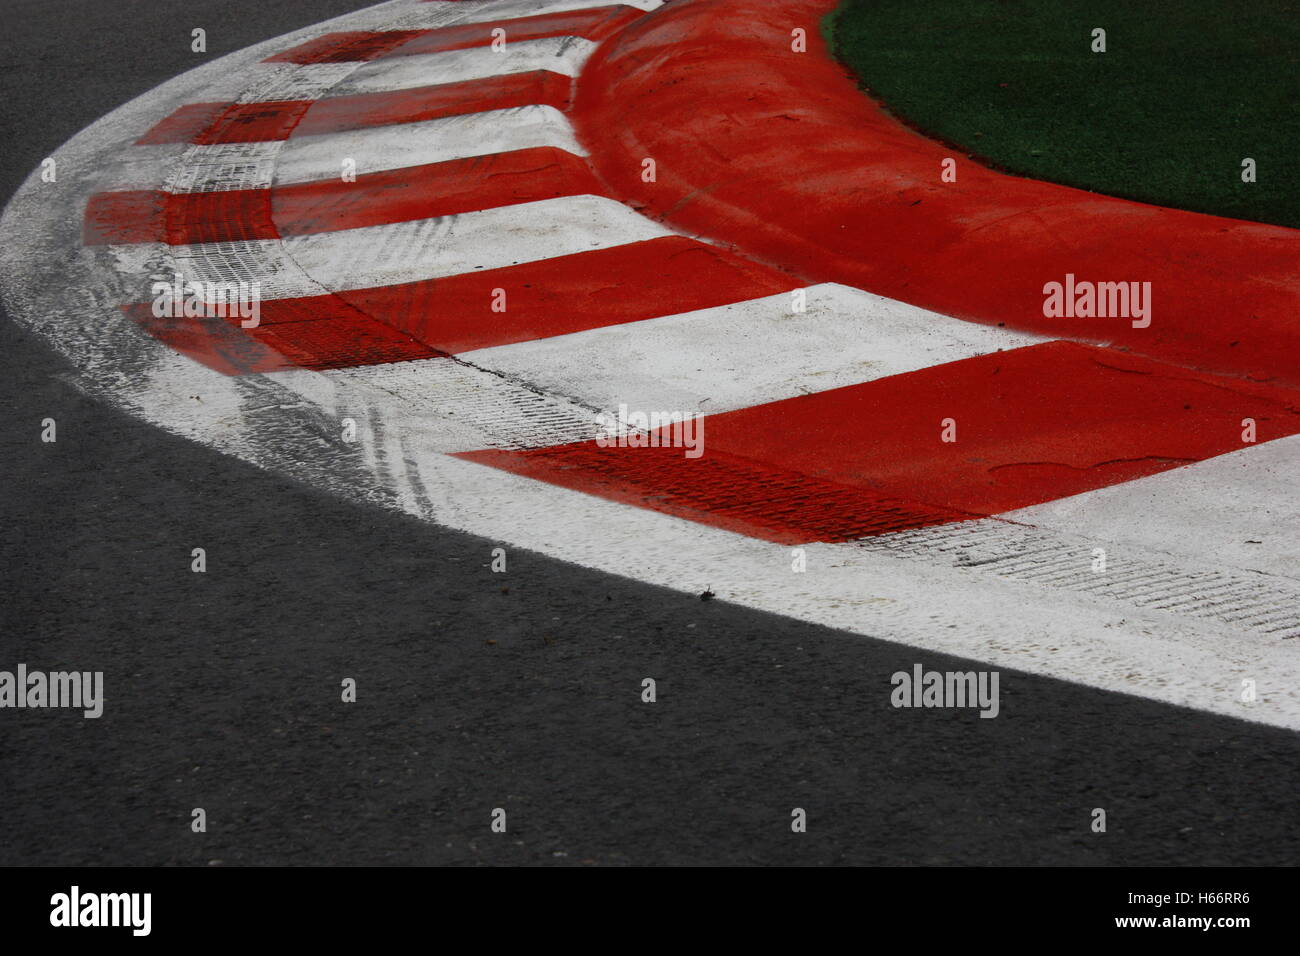 Bus stop chicane kerbs at Spa Francorchamps formula 1 circuit, Belgium - Stock Image